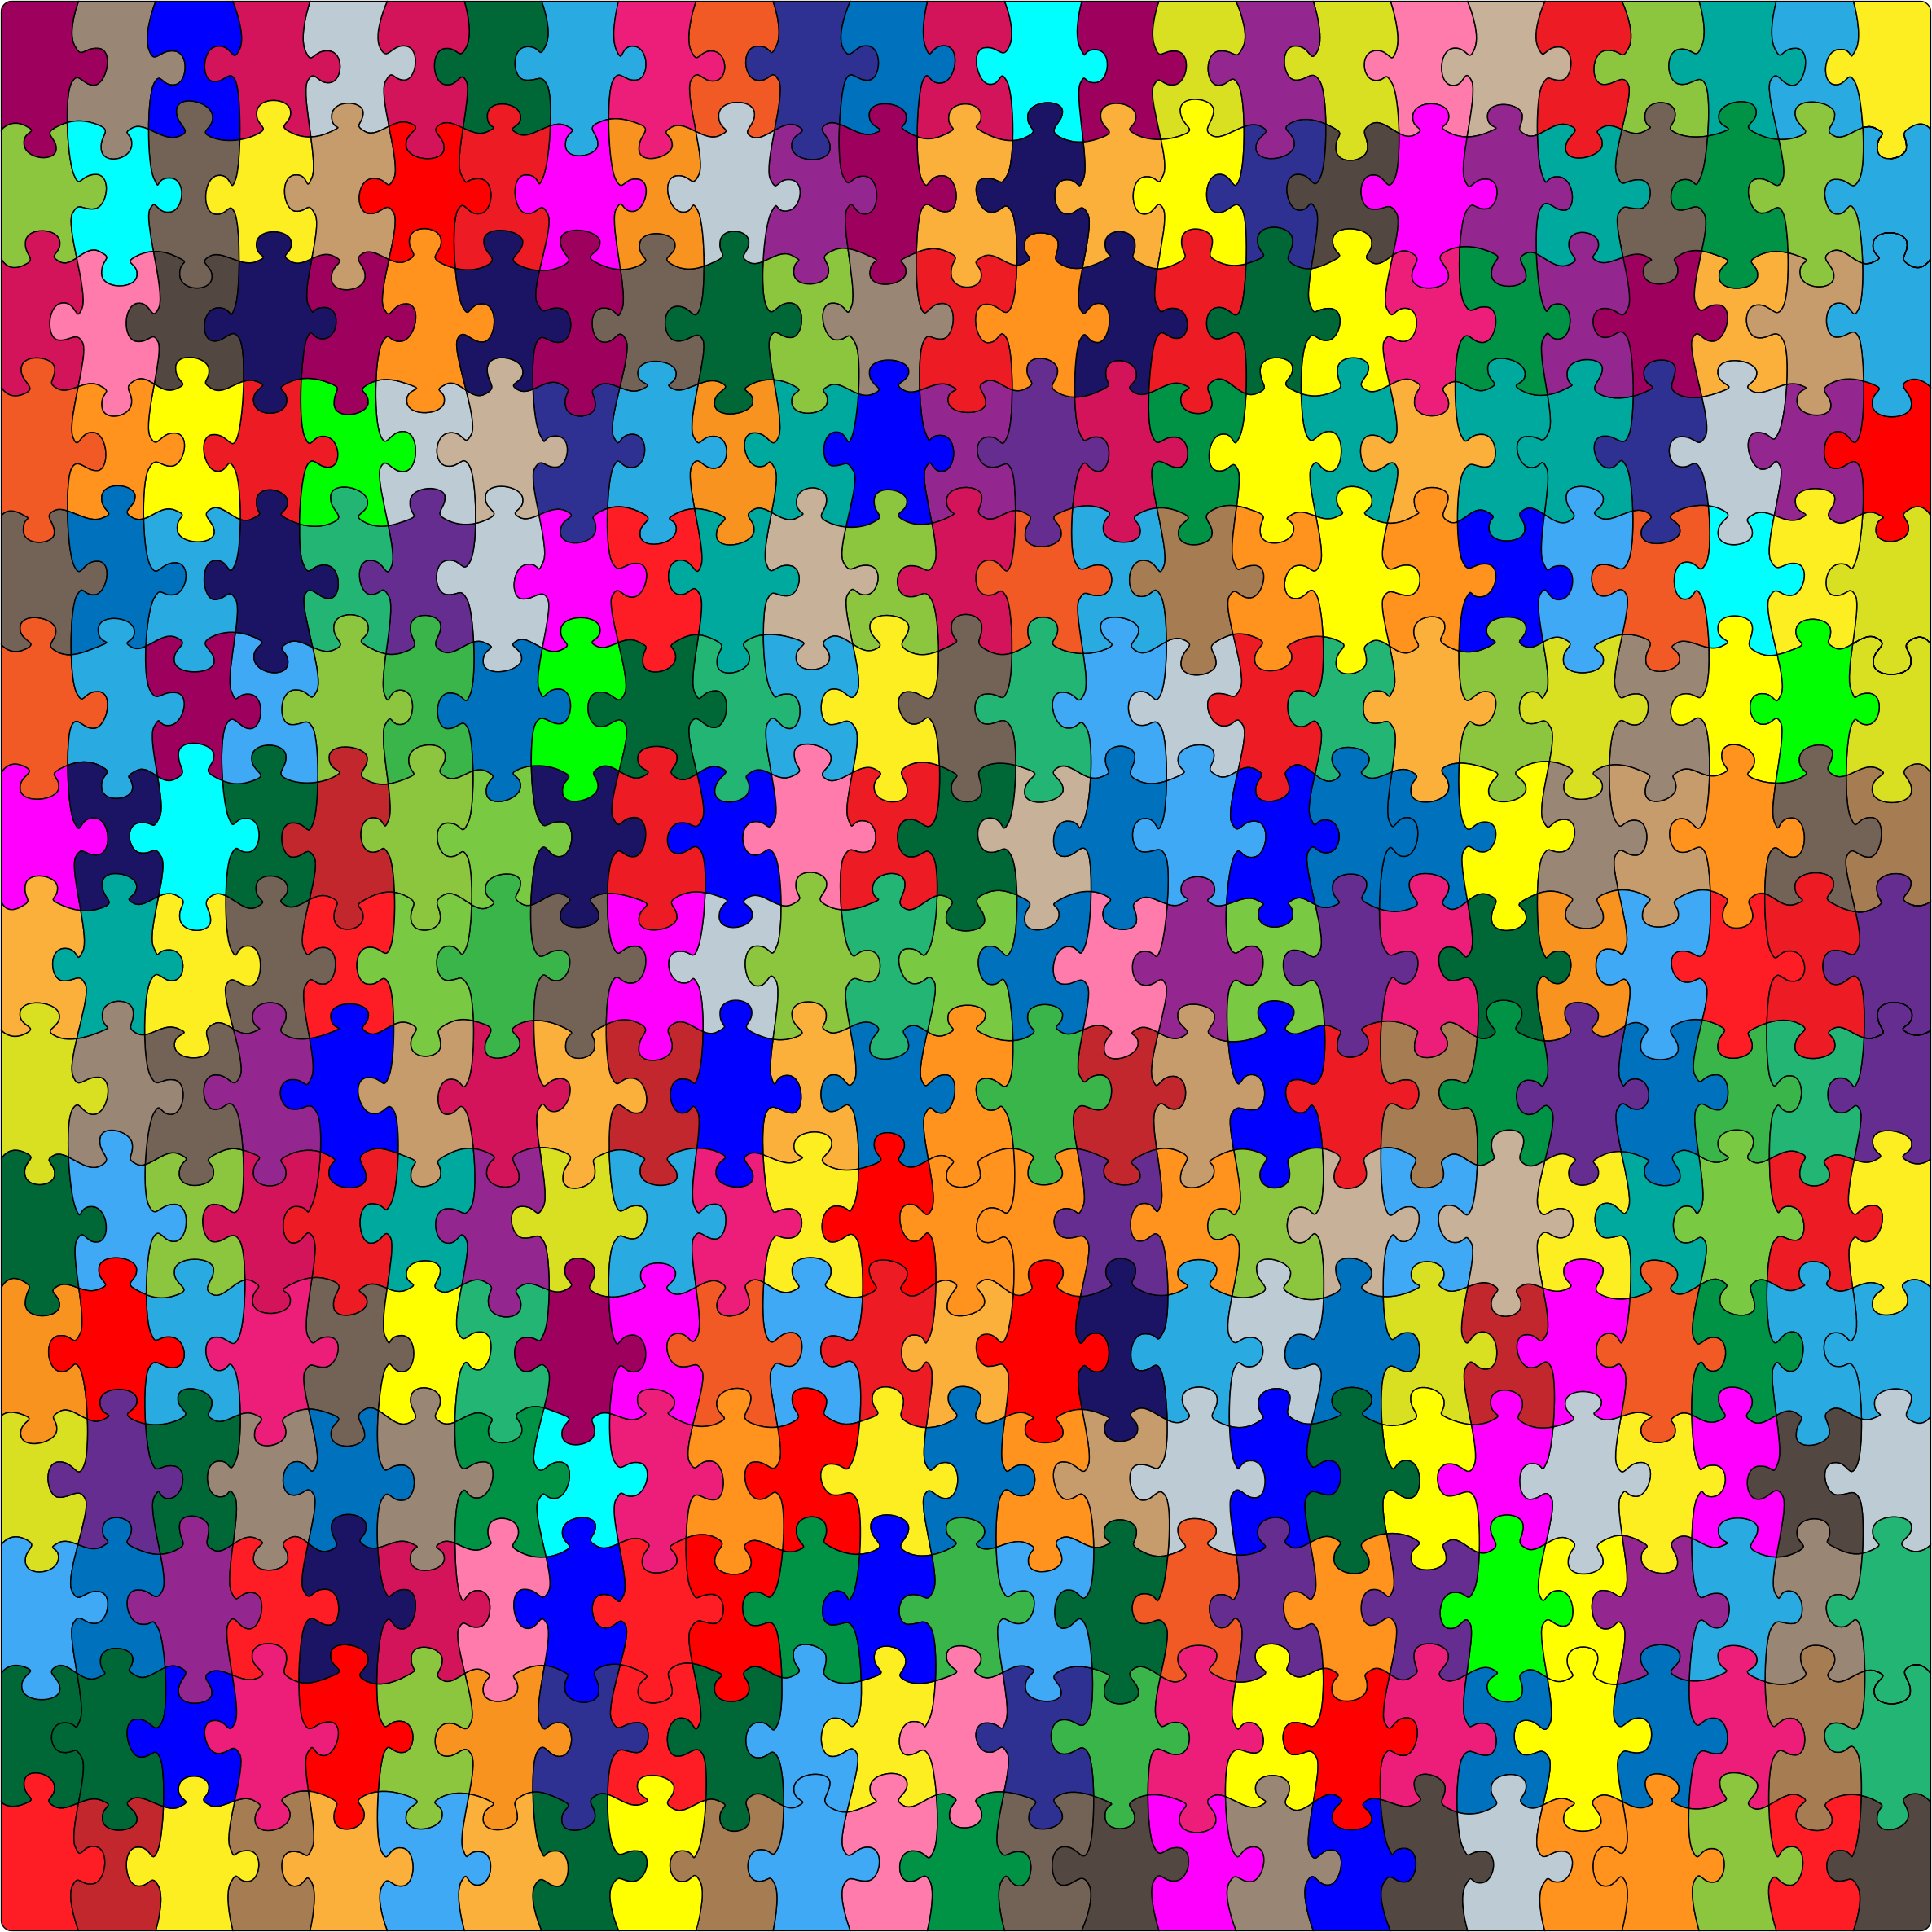 Multicolored Jigsaw Puzzle Pieces by GDJ